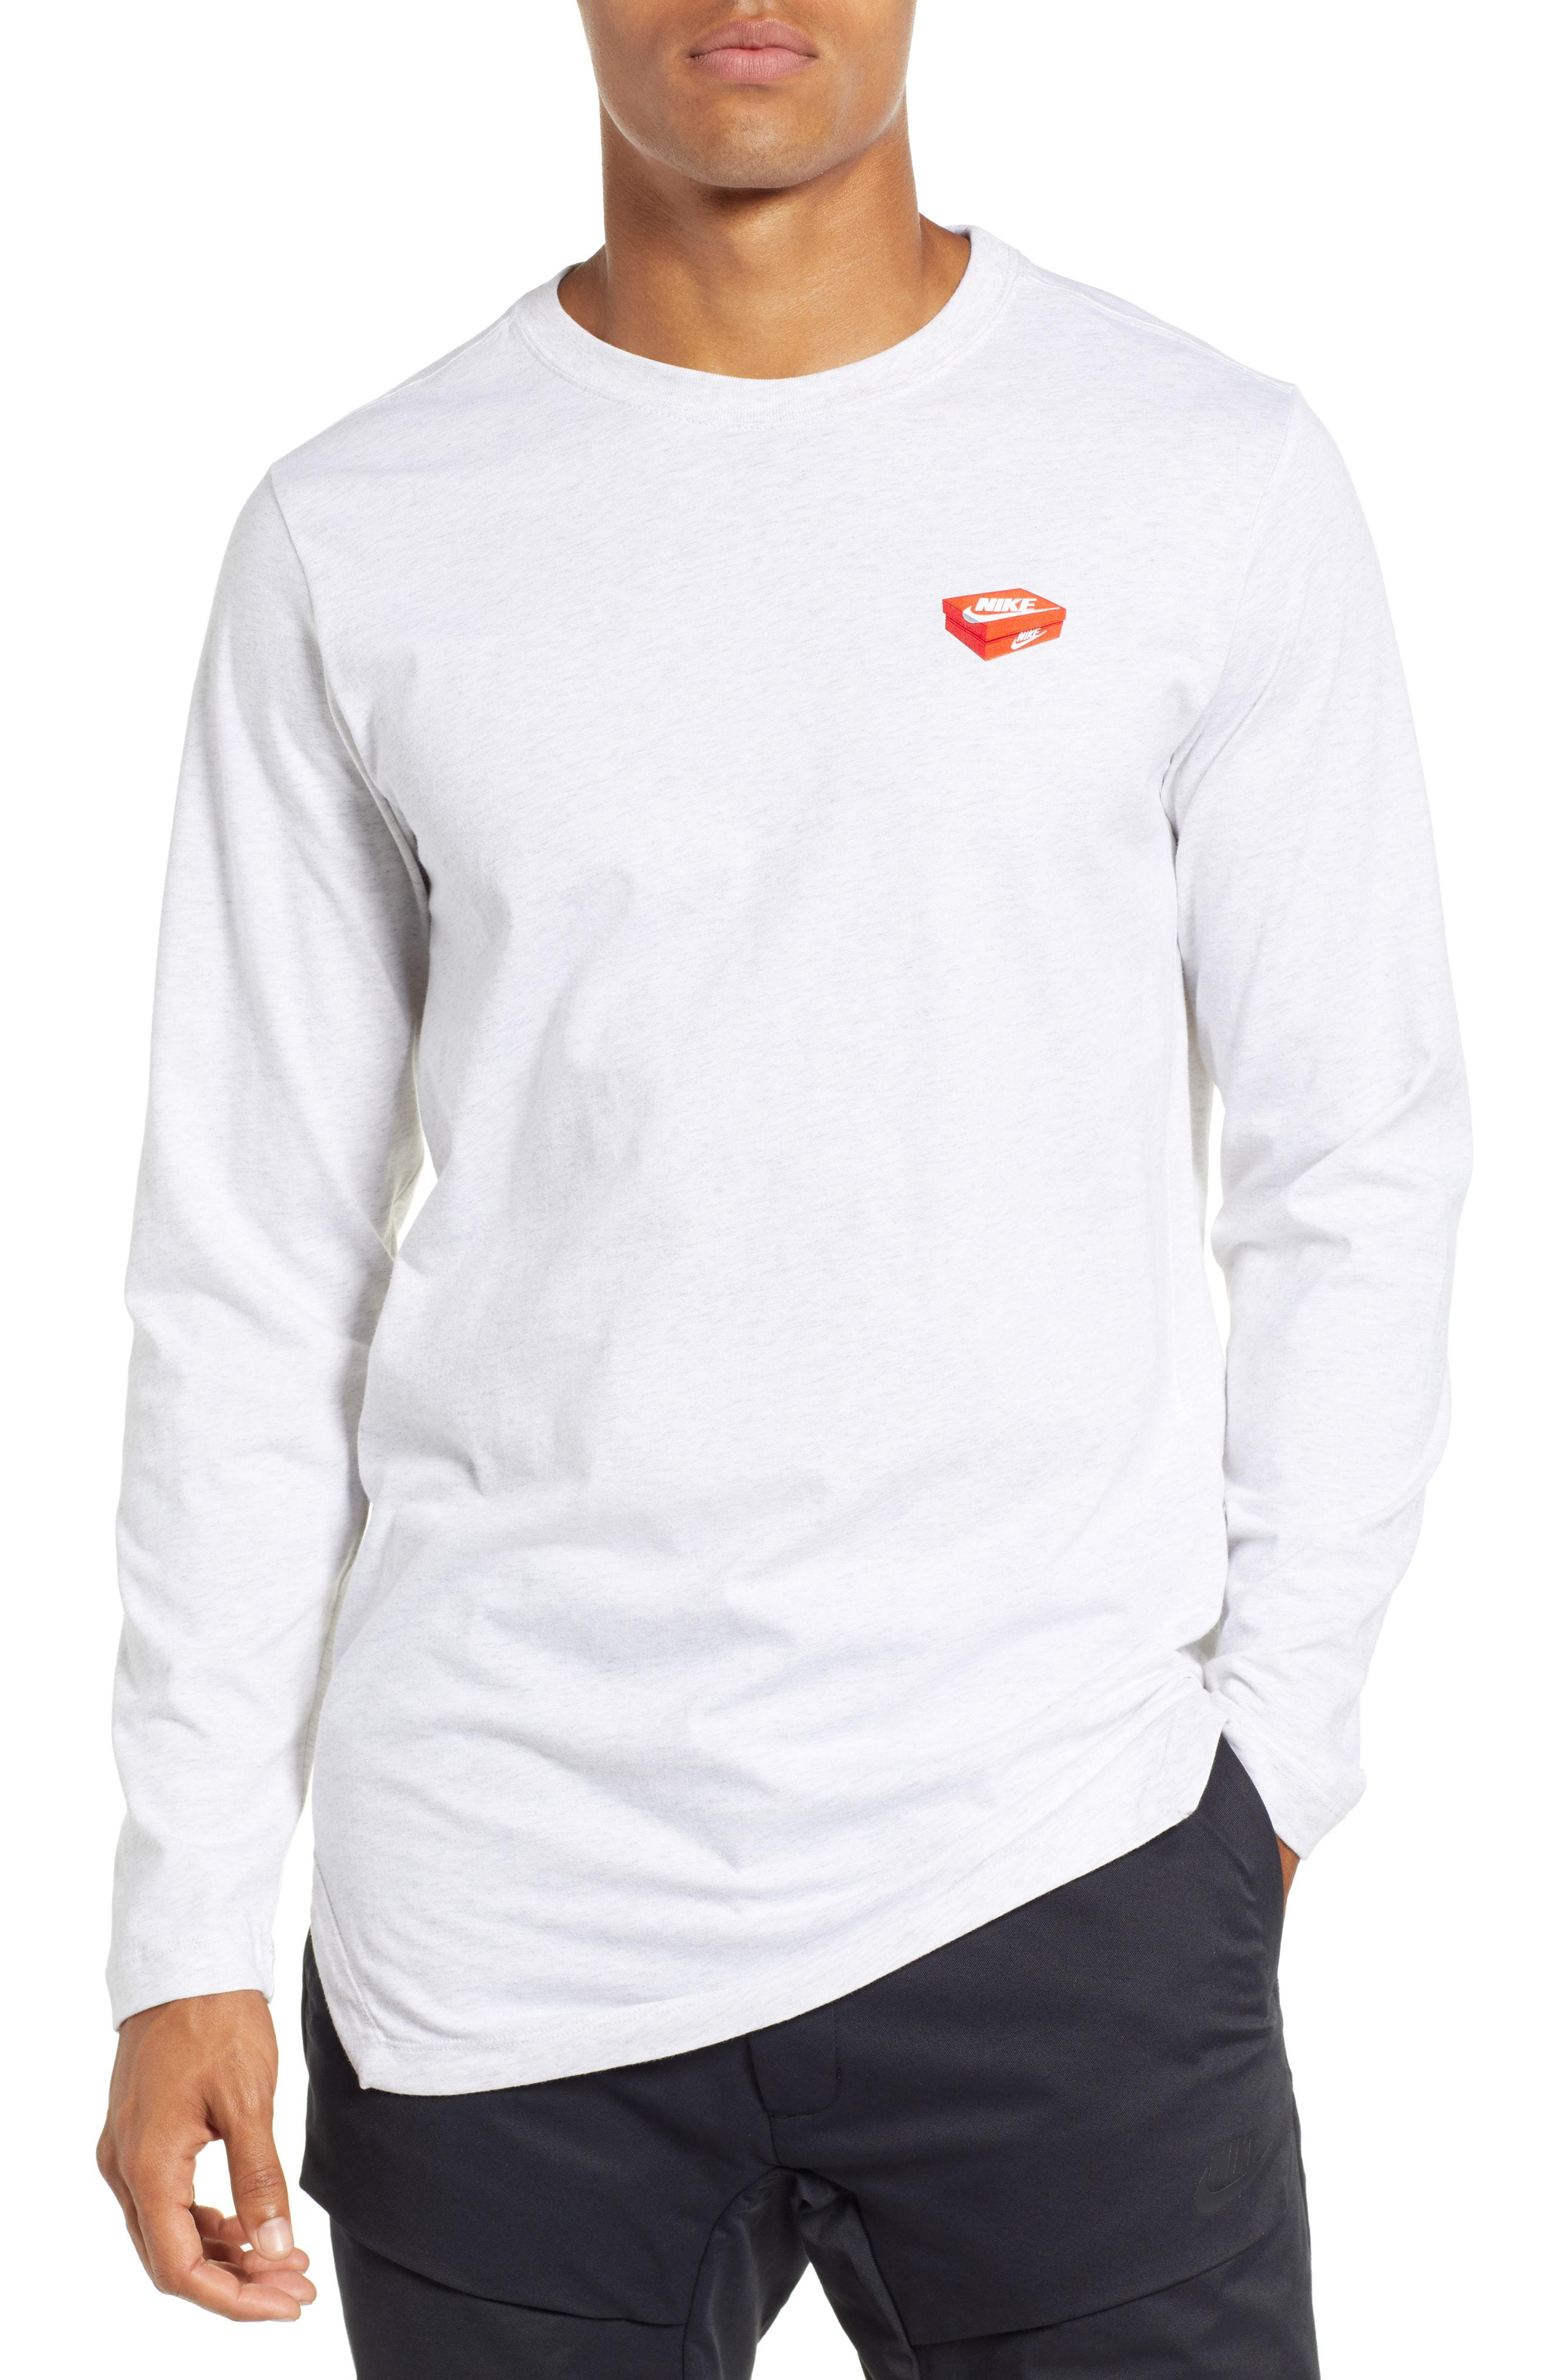 281bc54b9 Nike Nsw Shoe Box Graphic Long Sleeve T-shirt in White for Men - Lyst